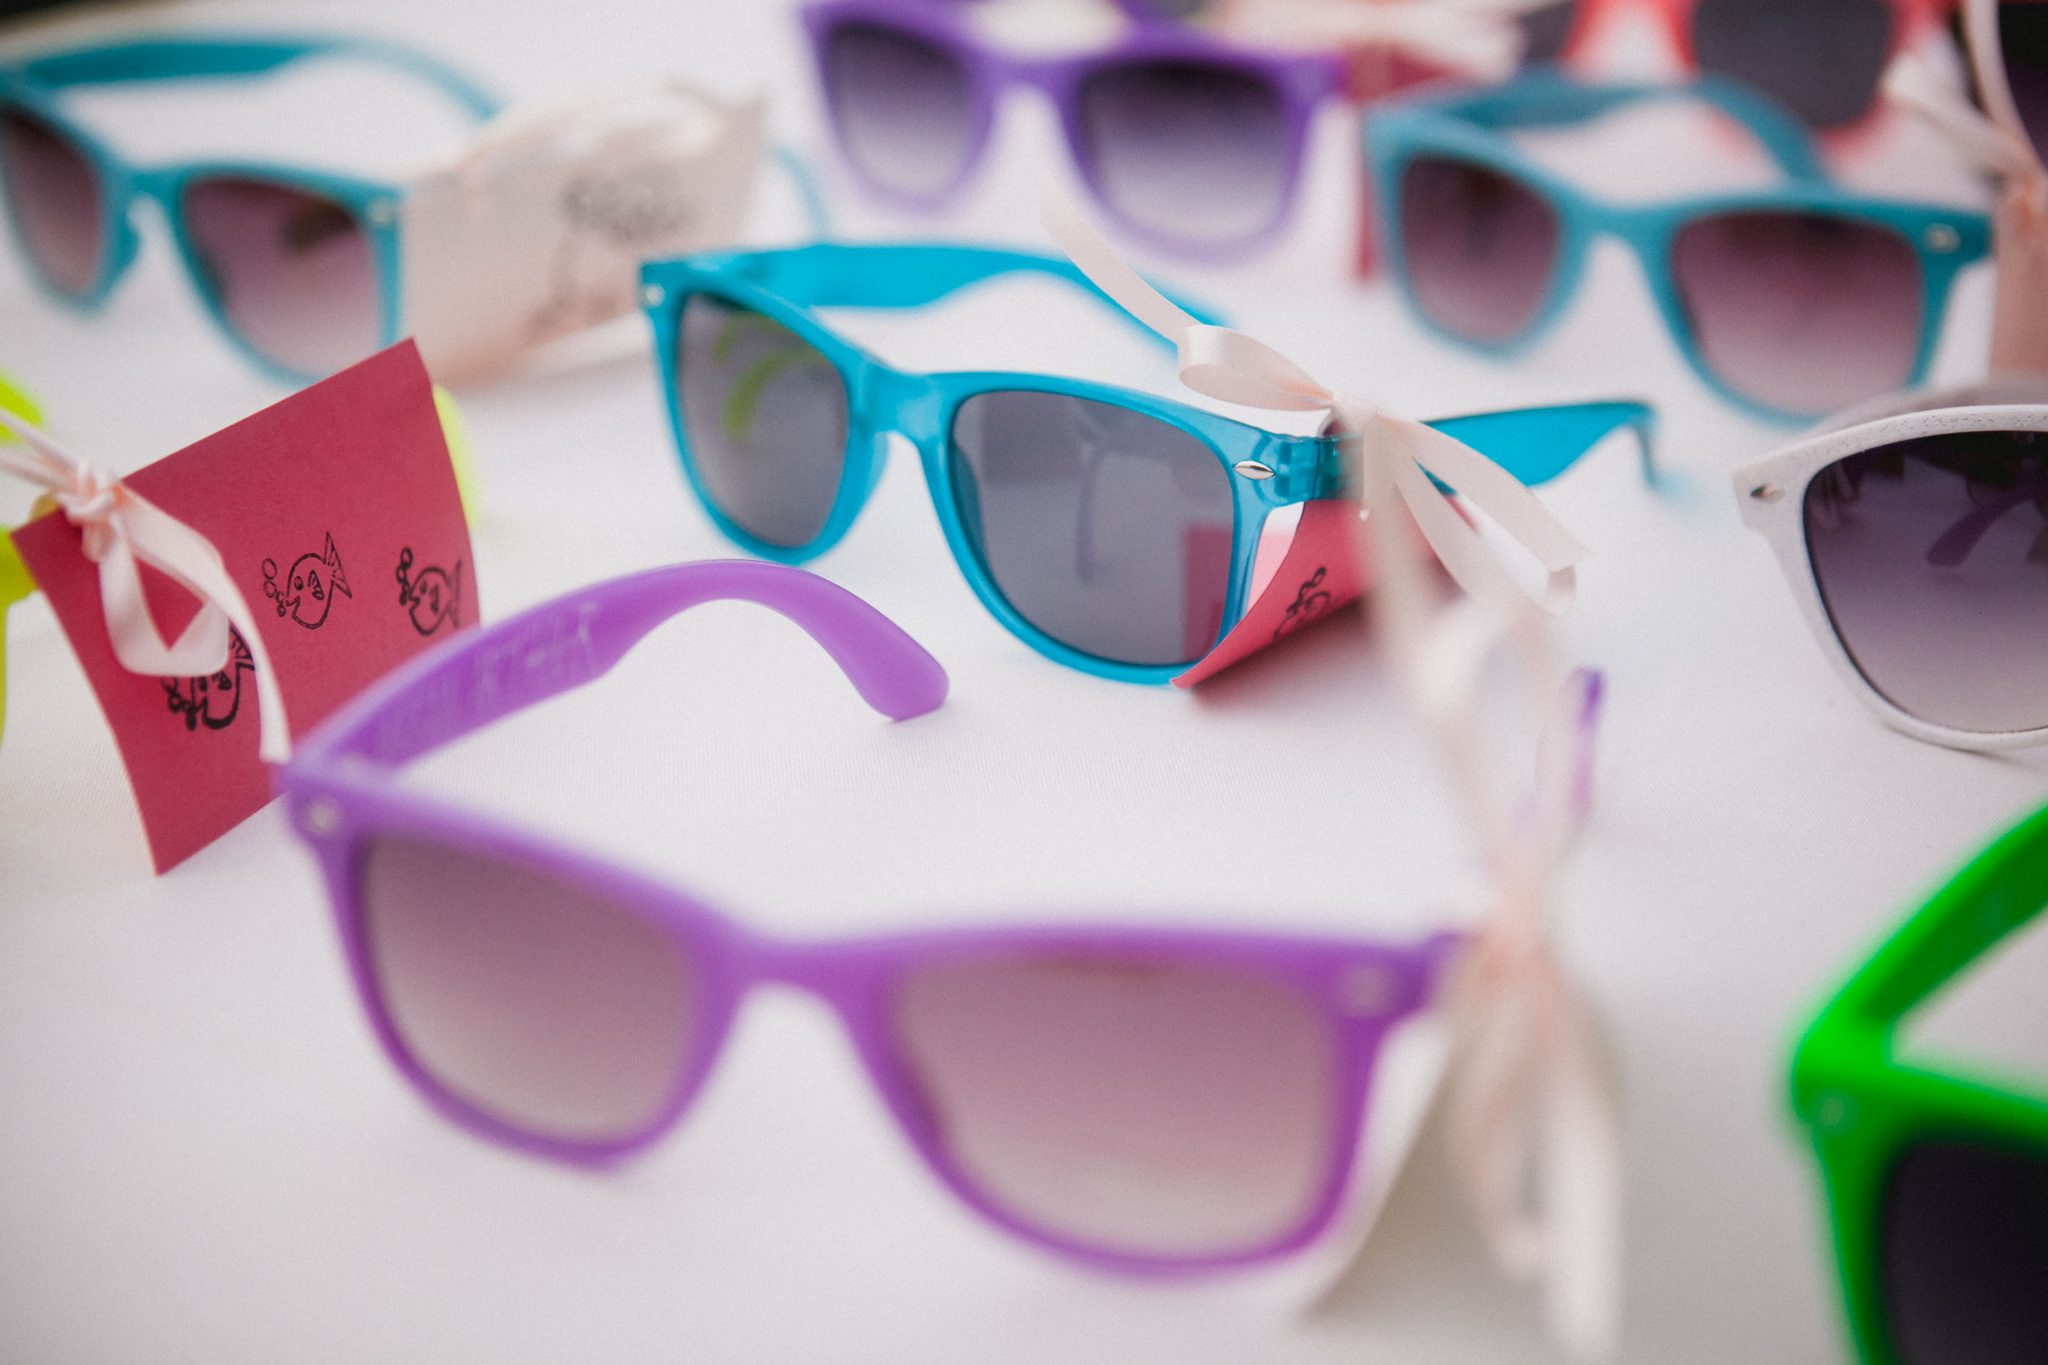 Sunglasses wedding favors for guests during the ceremony